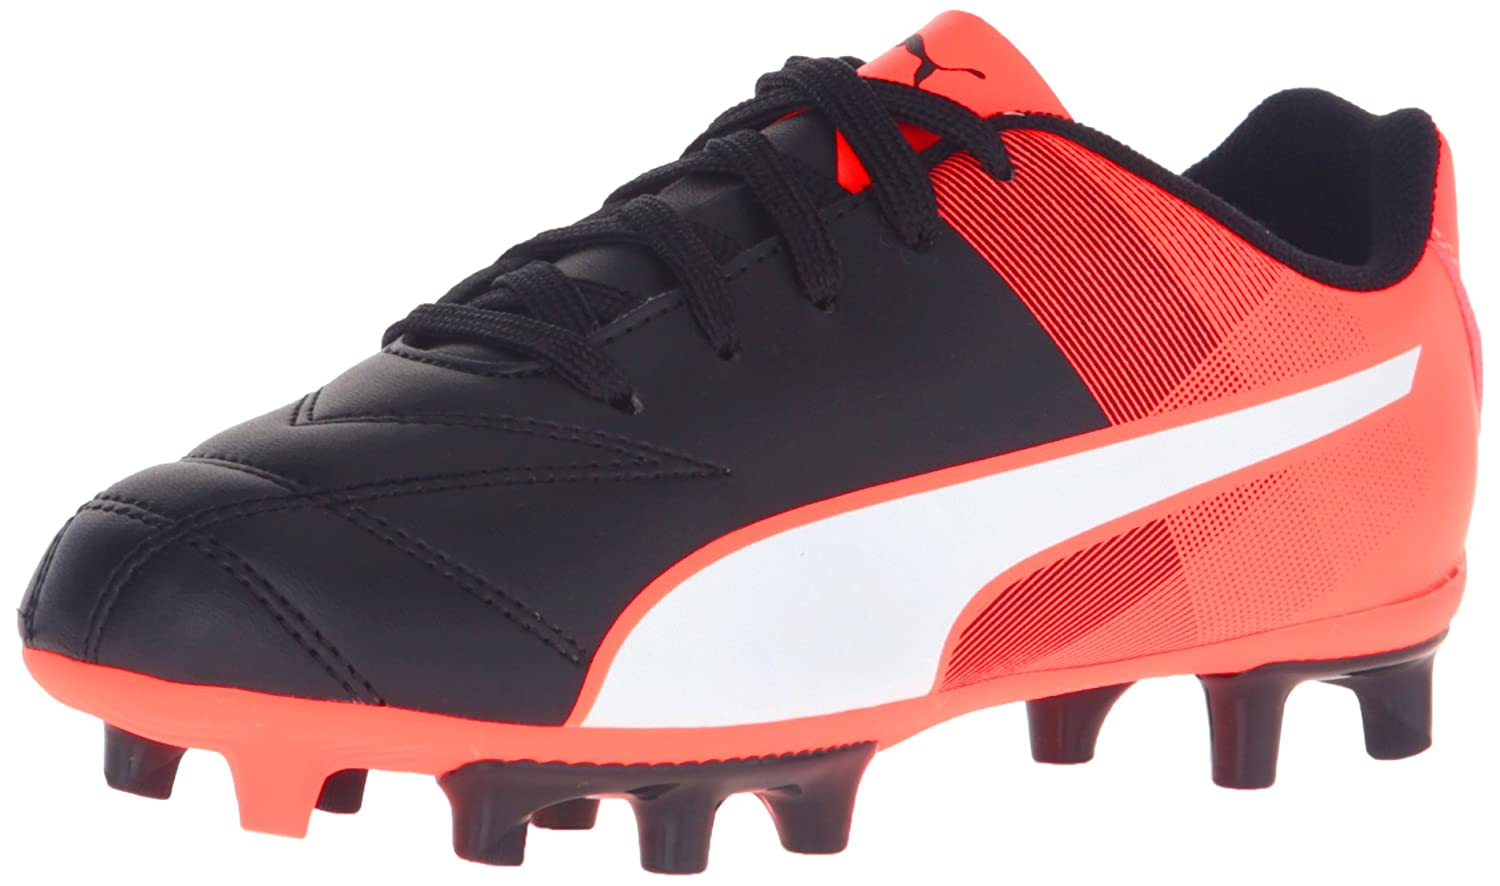 PUMA Adreno II FG Jr Soccer Schuhe (Little Kid Big Kid), schwarz Weiß,5.5 M US Big Kid